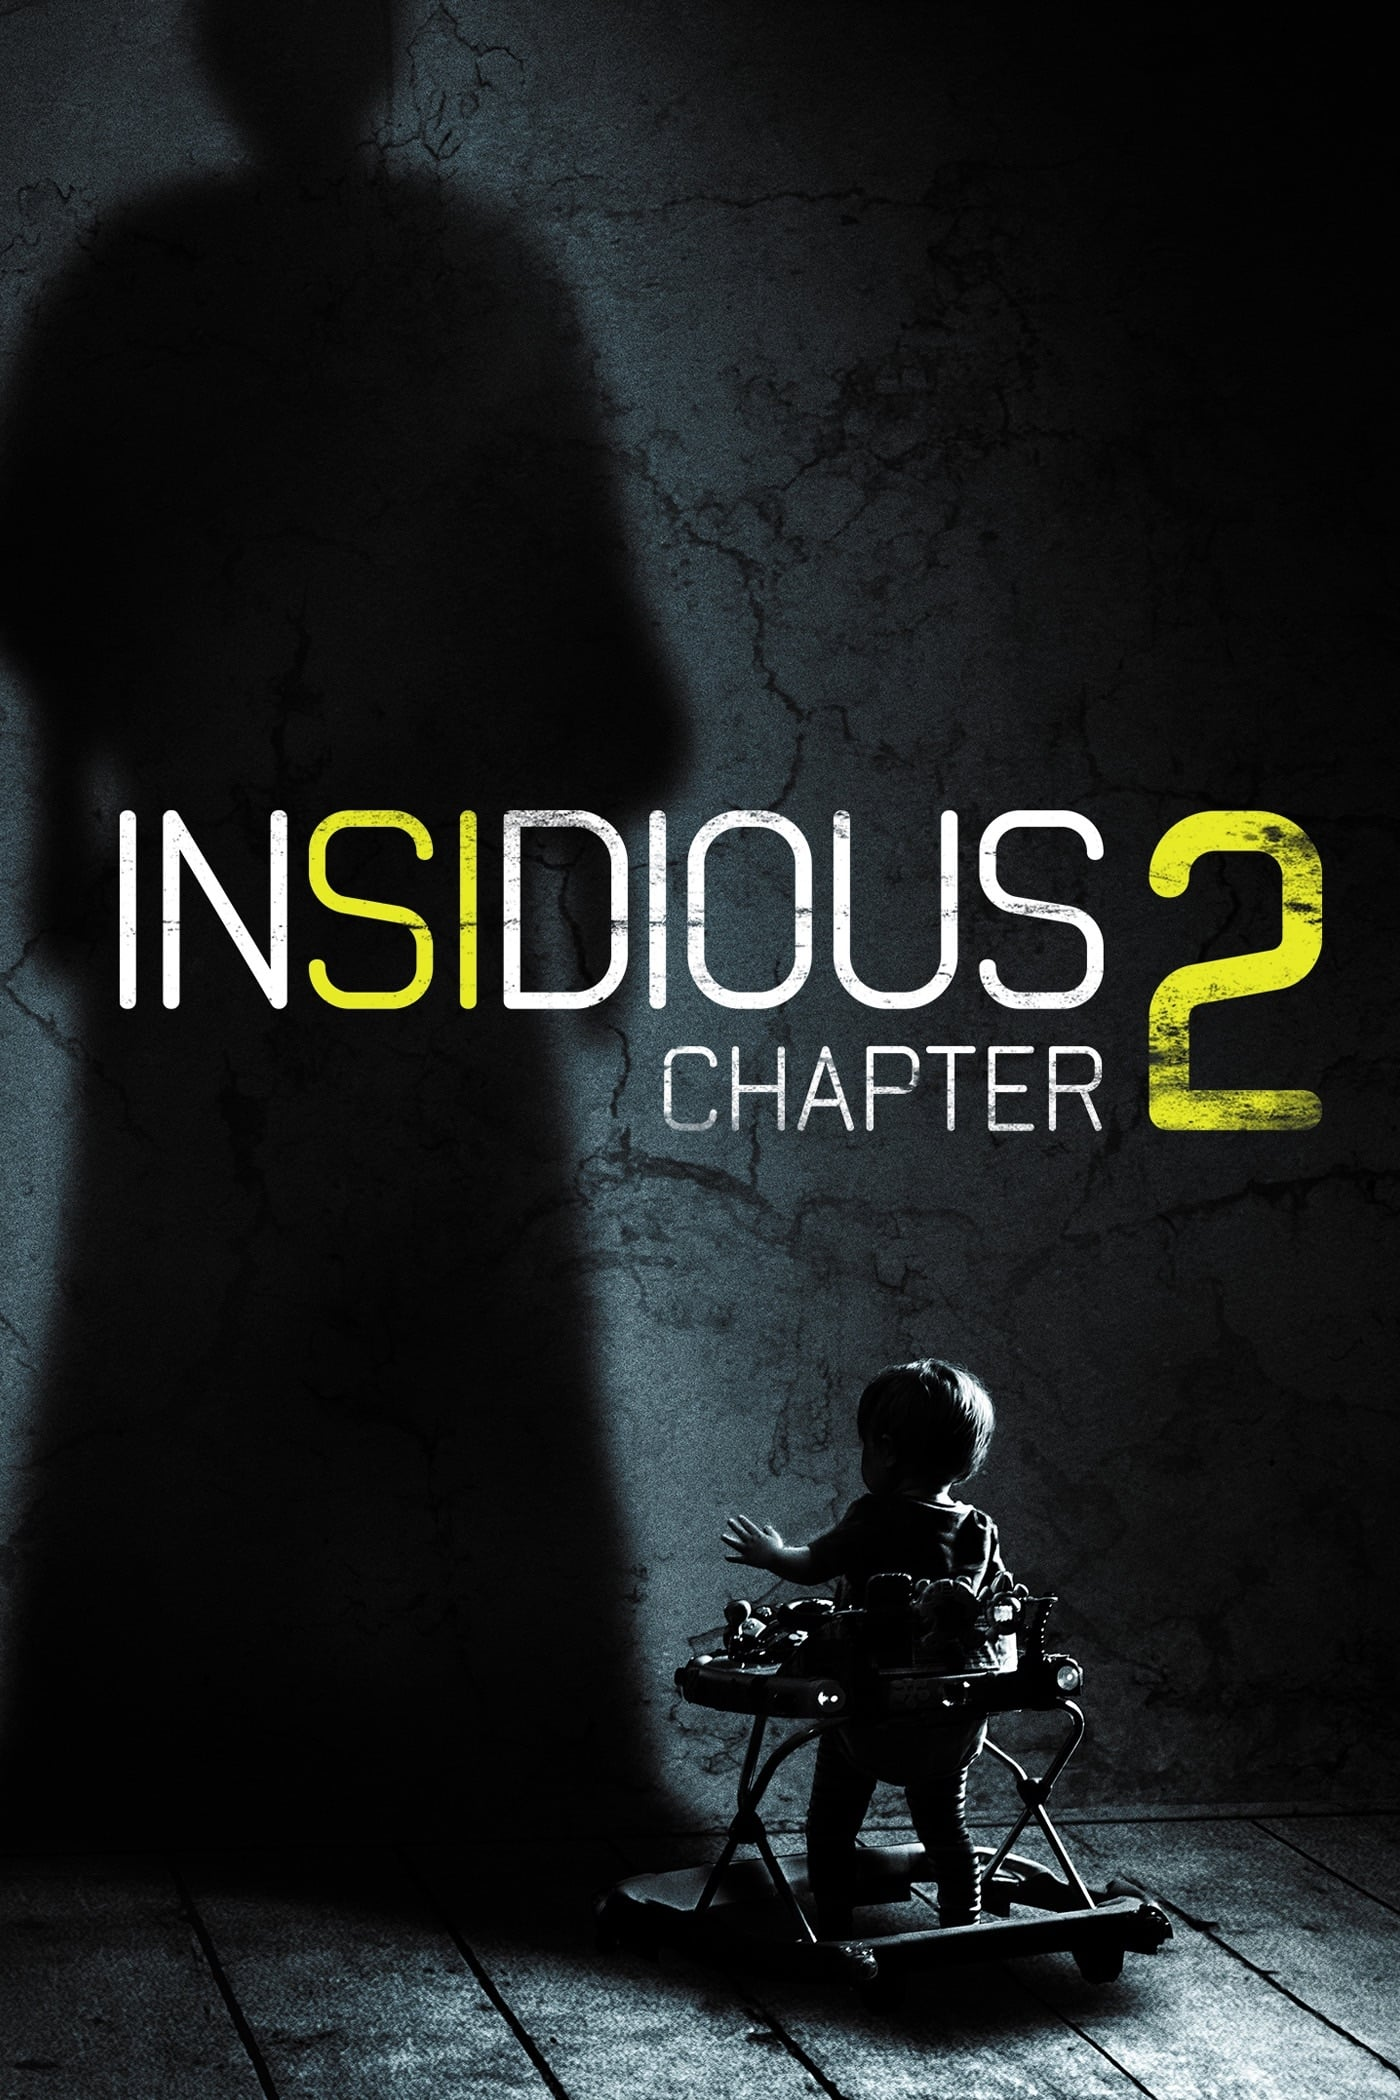 Insidious Chapter 2 2013 Posters The Movie Database Tmdb